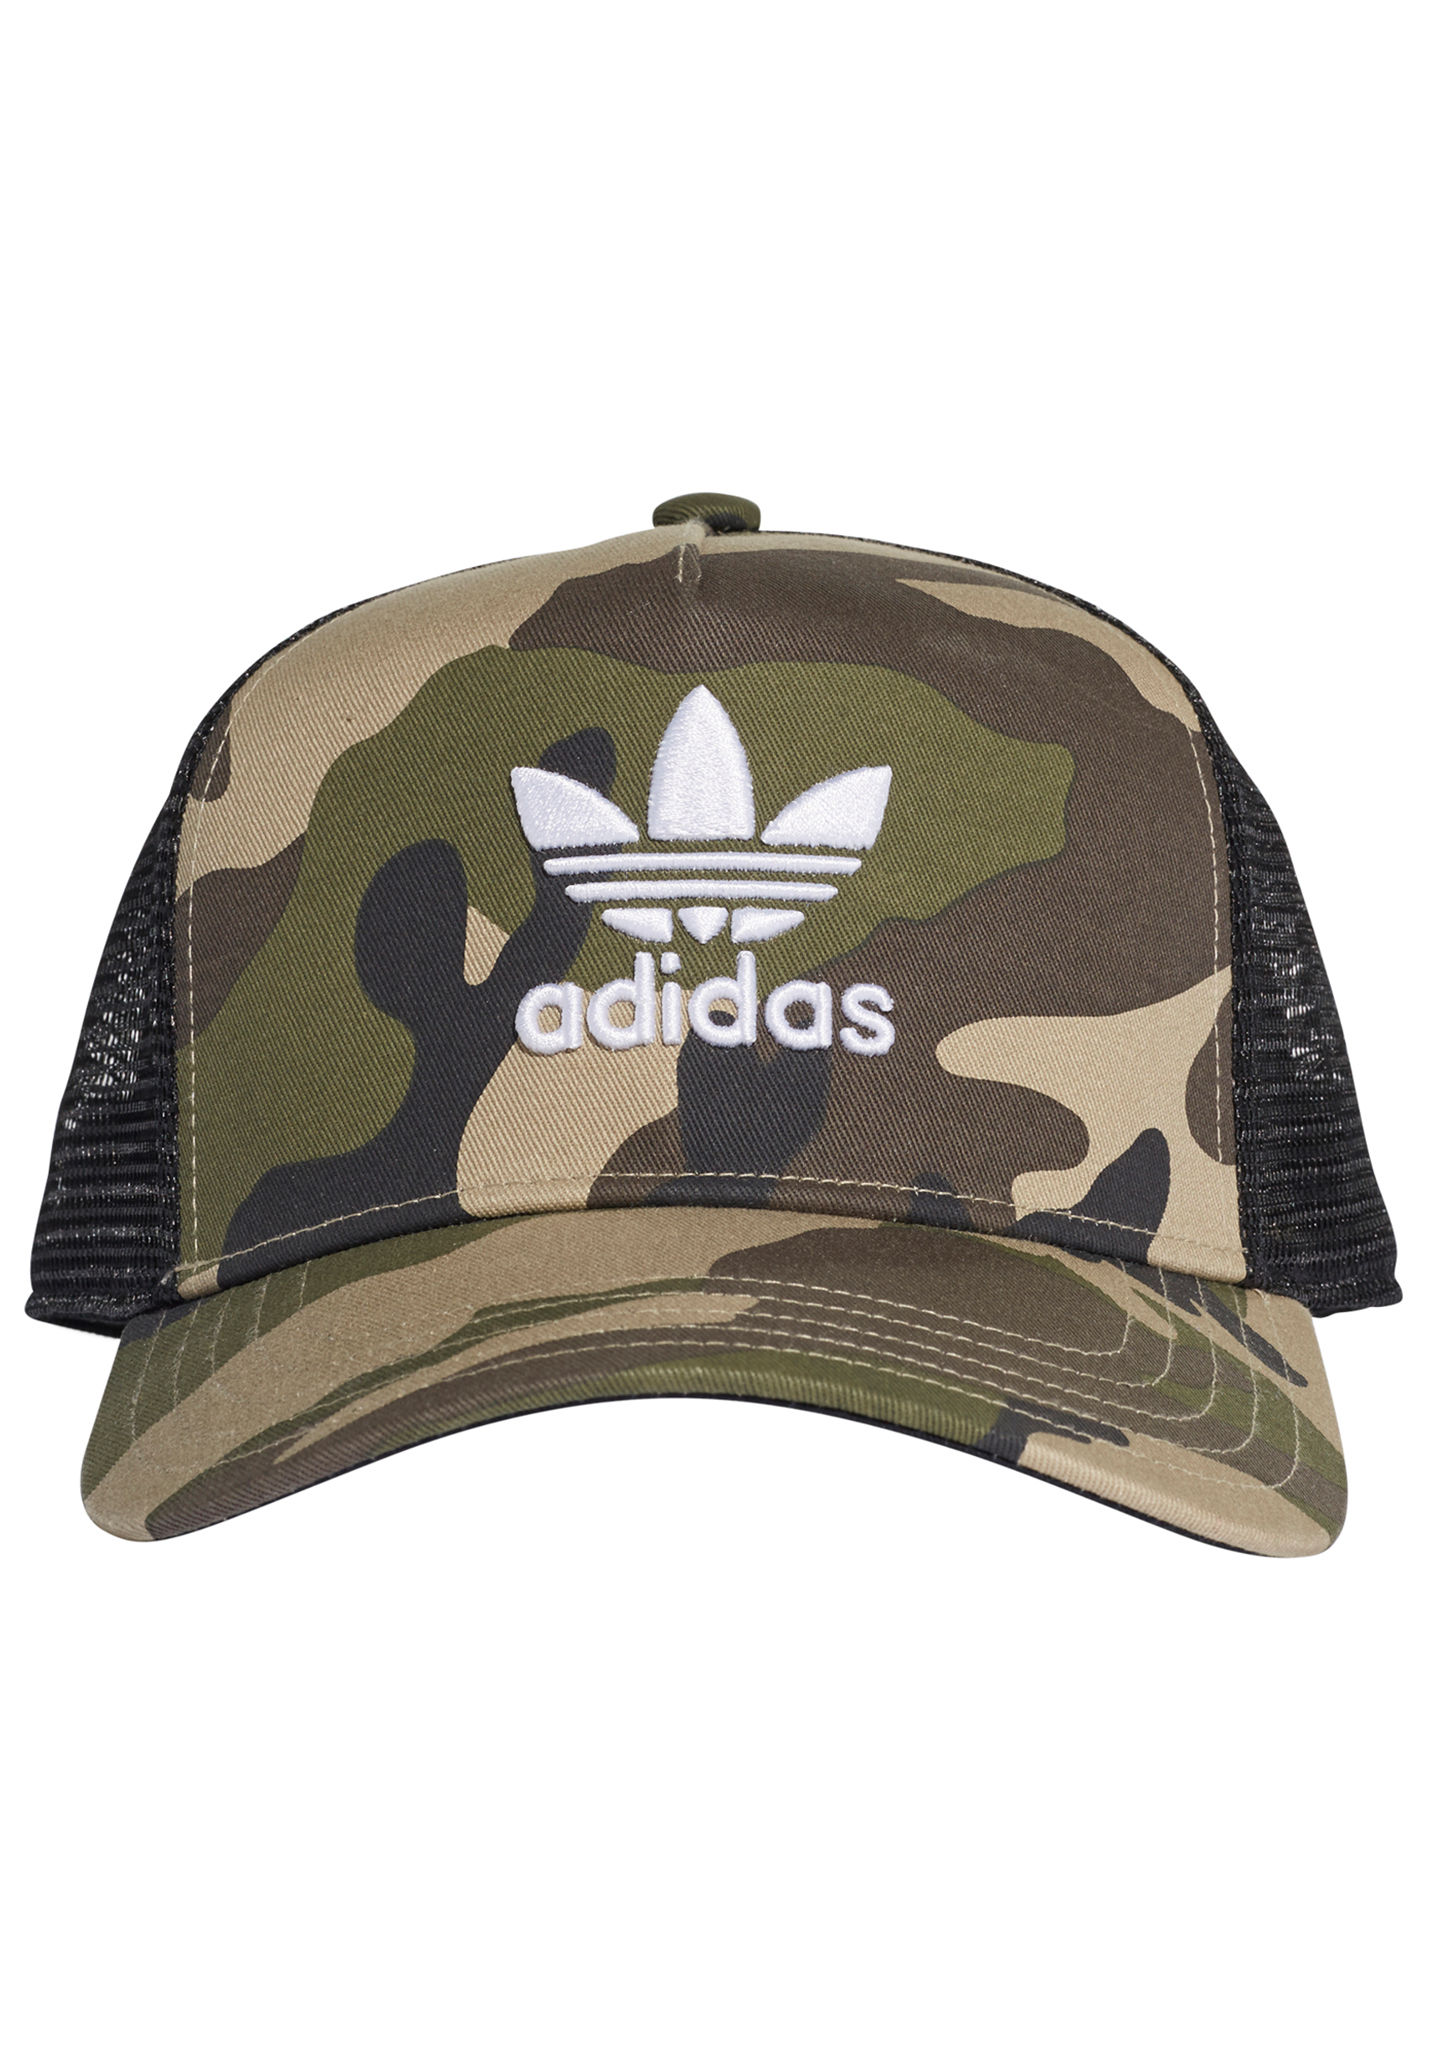 106d1353dbc79 ADIDAS ORIGINALS Crv Vsr - Trucker Cap for Men - Camo - Planet Sports